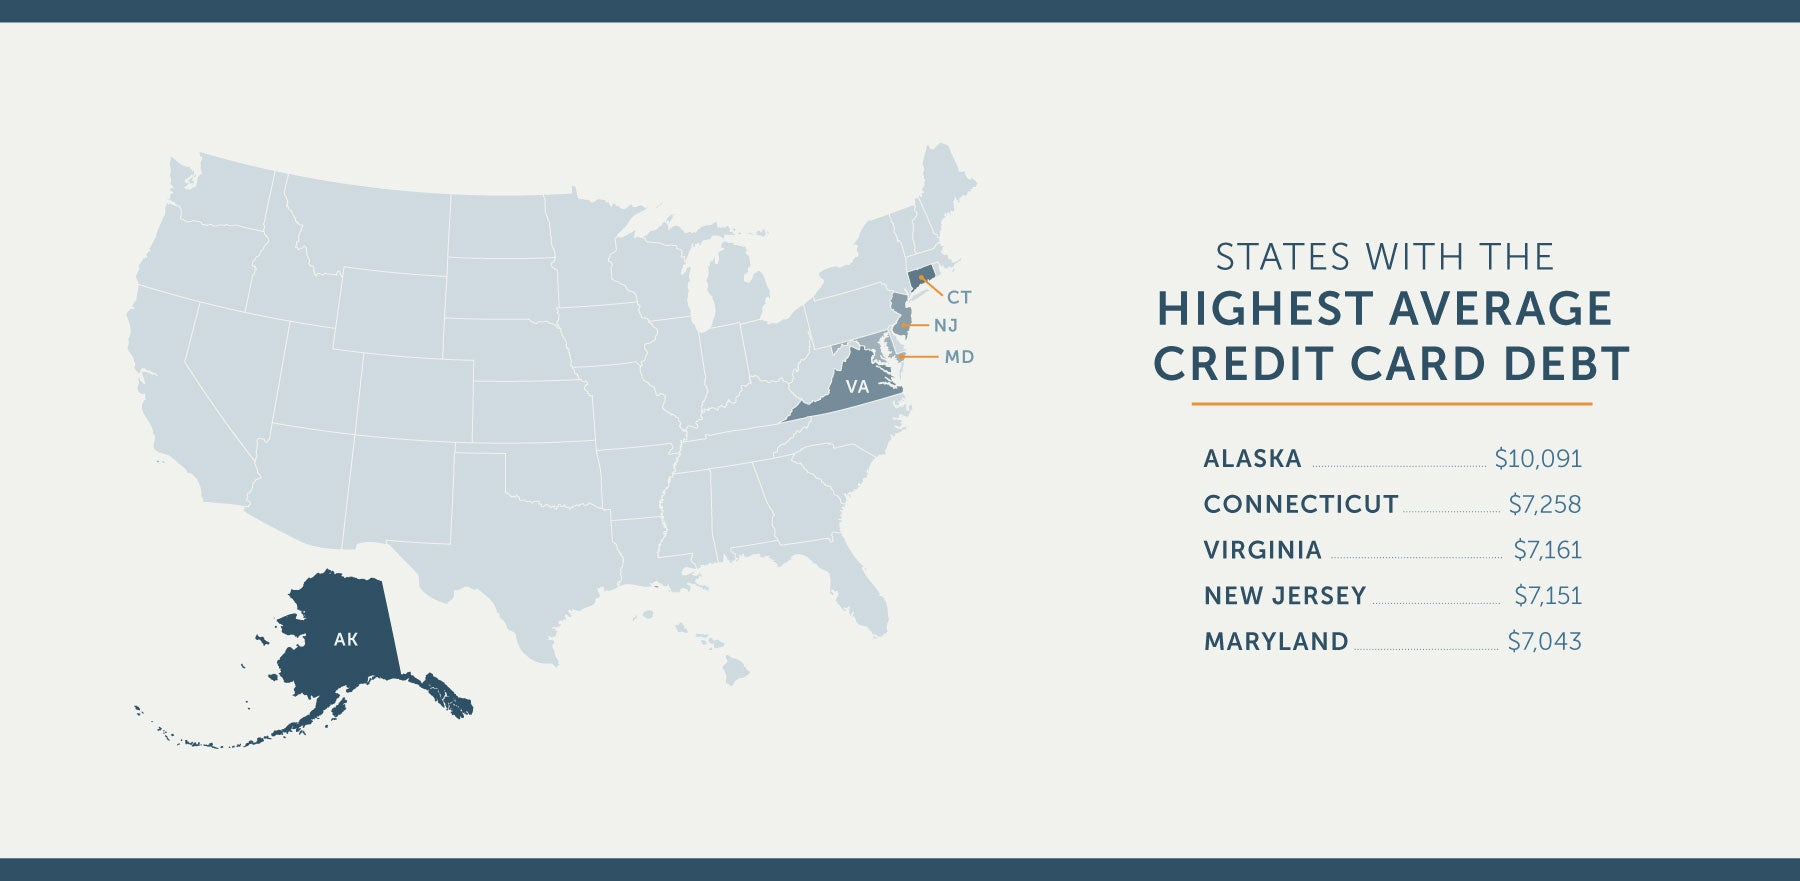 us states with the highest average credit card debt